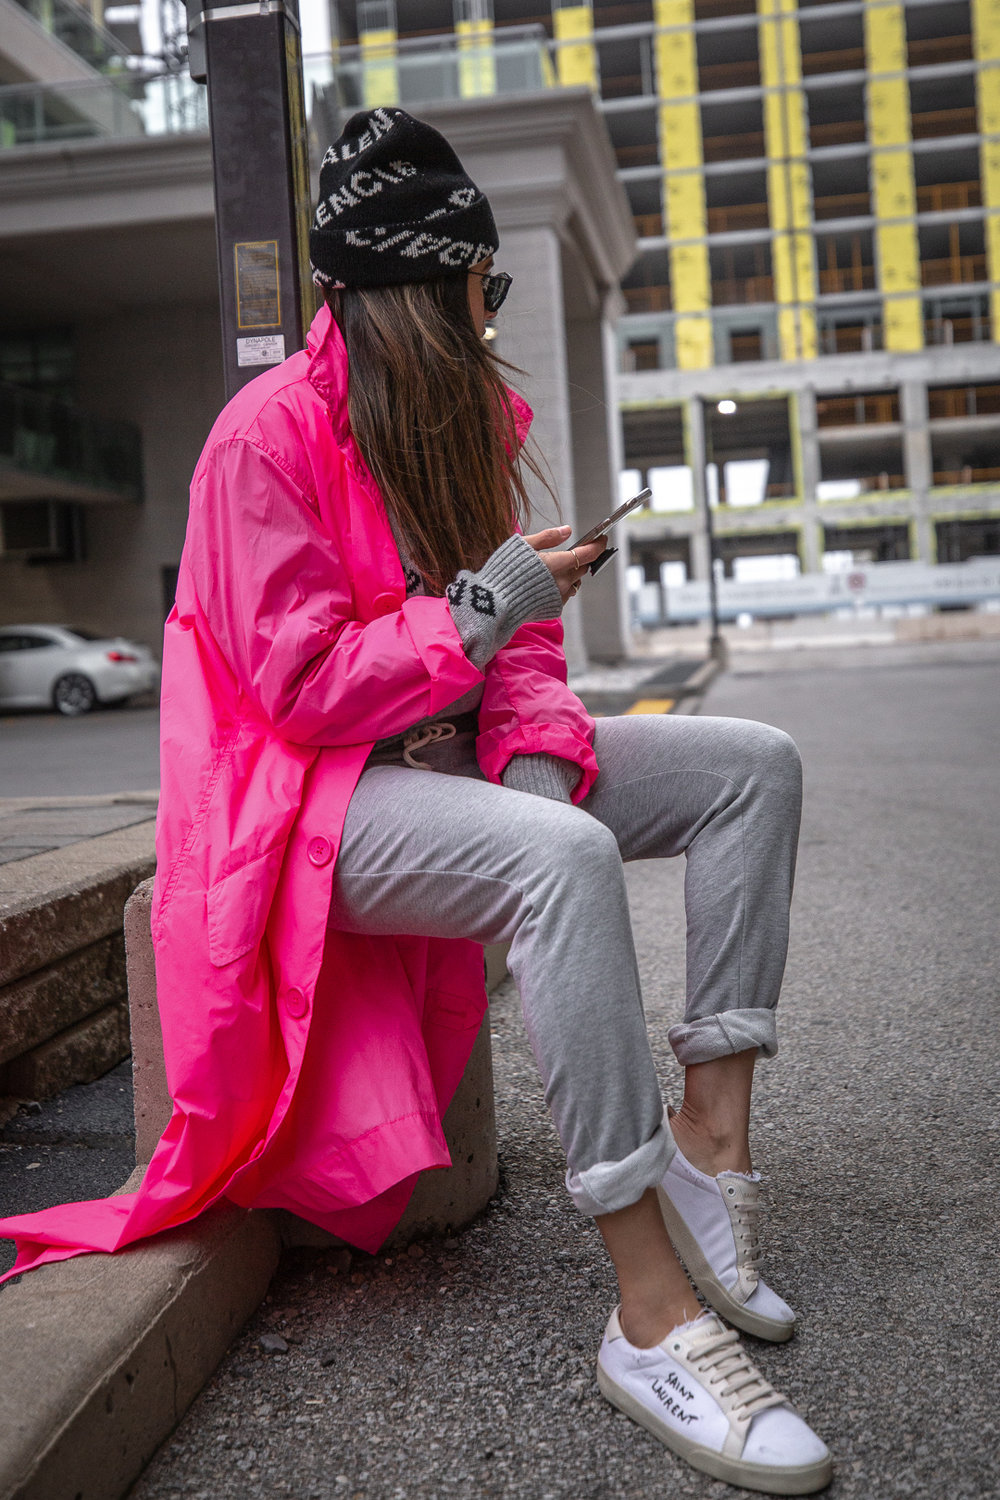 Nathalie Martin - Opening Ceremony pink nylon trench, Saint Laurent white canvas sneakers, Balenciaga logo beanie and cropped logo sweater, grey joggers, casual street style, woahstyle.com_5515.jpg